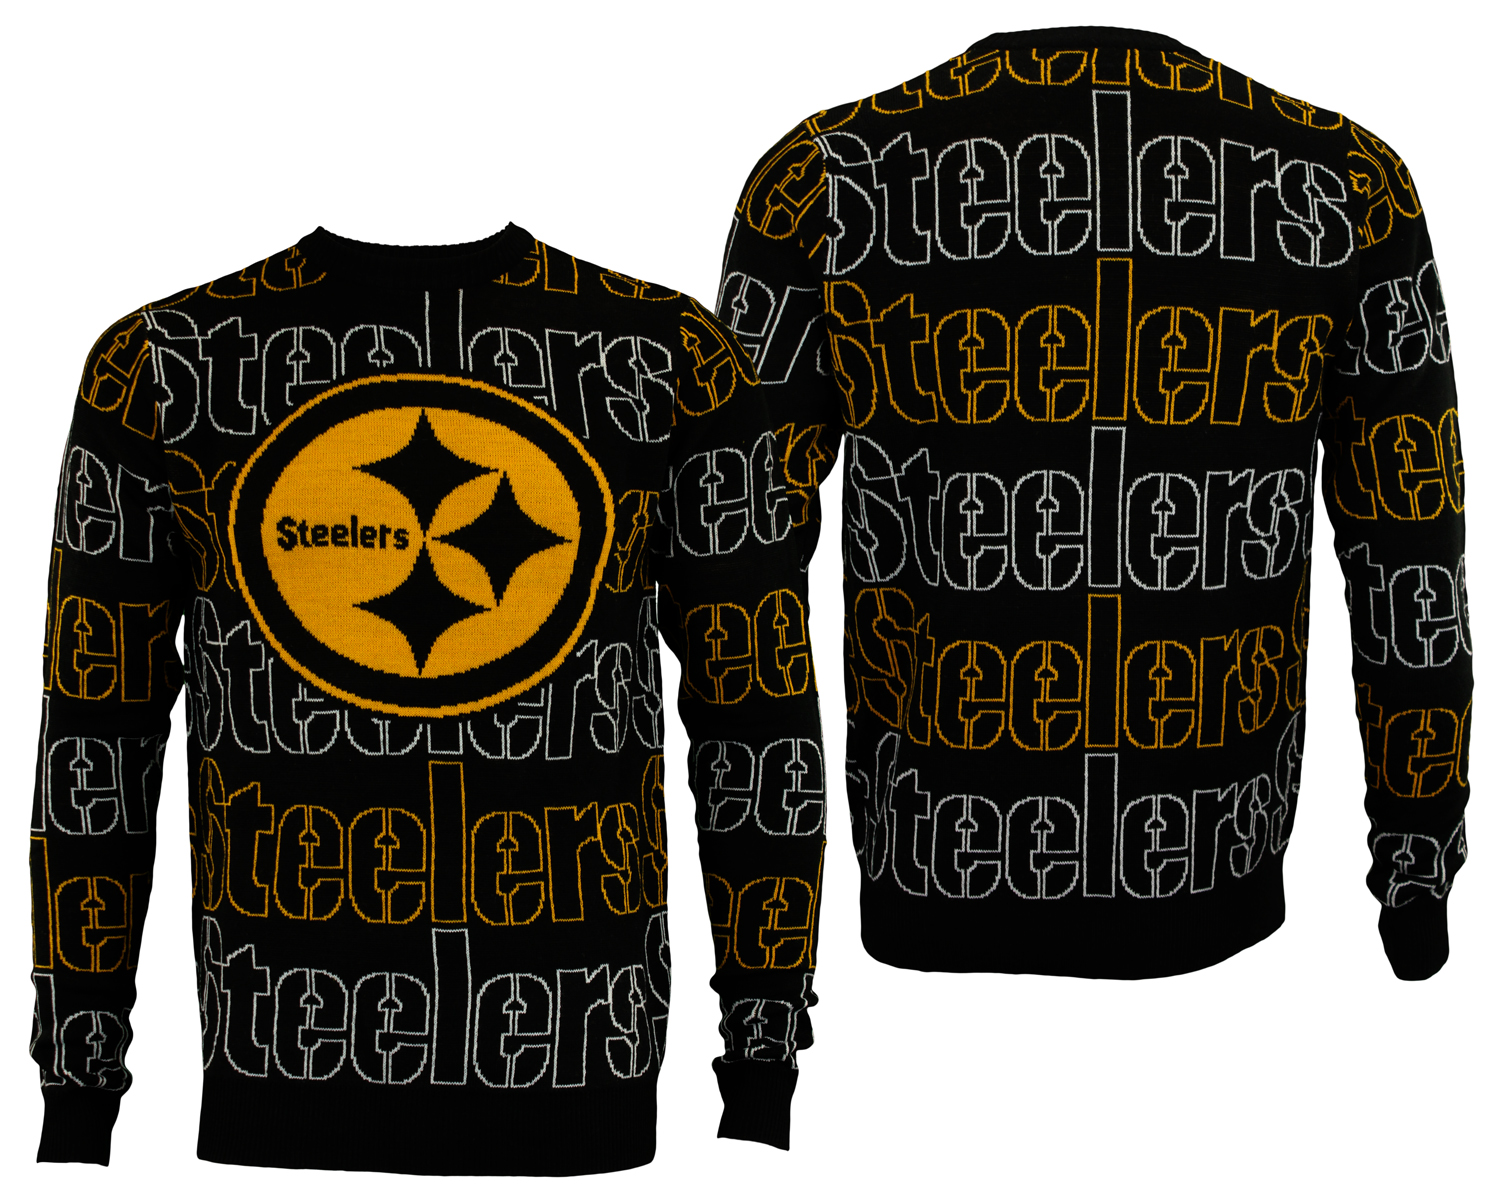 brand new 9c05c 1a1a2 Details about FOCO NFL Men's Pittsburgh Steelers Wordmark Repeat Ugly  Sweater